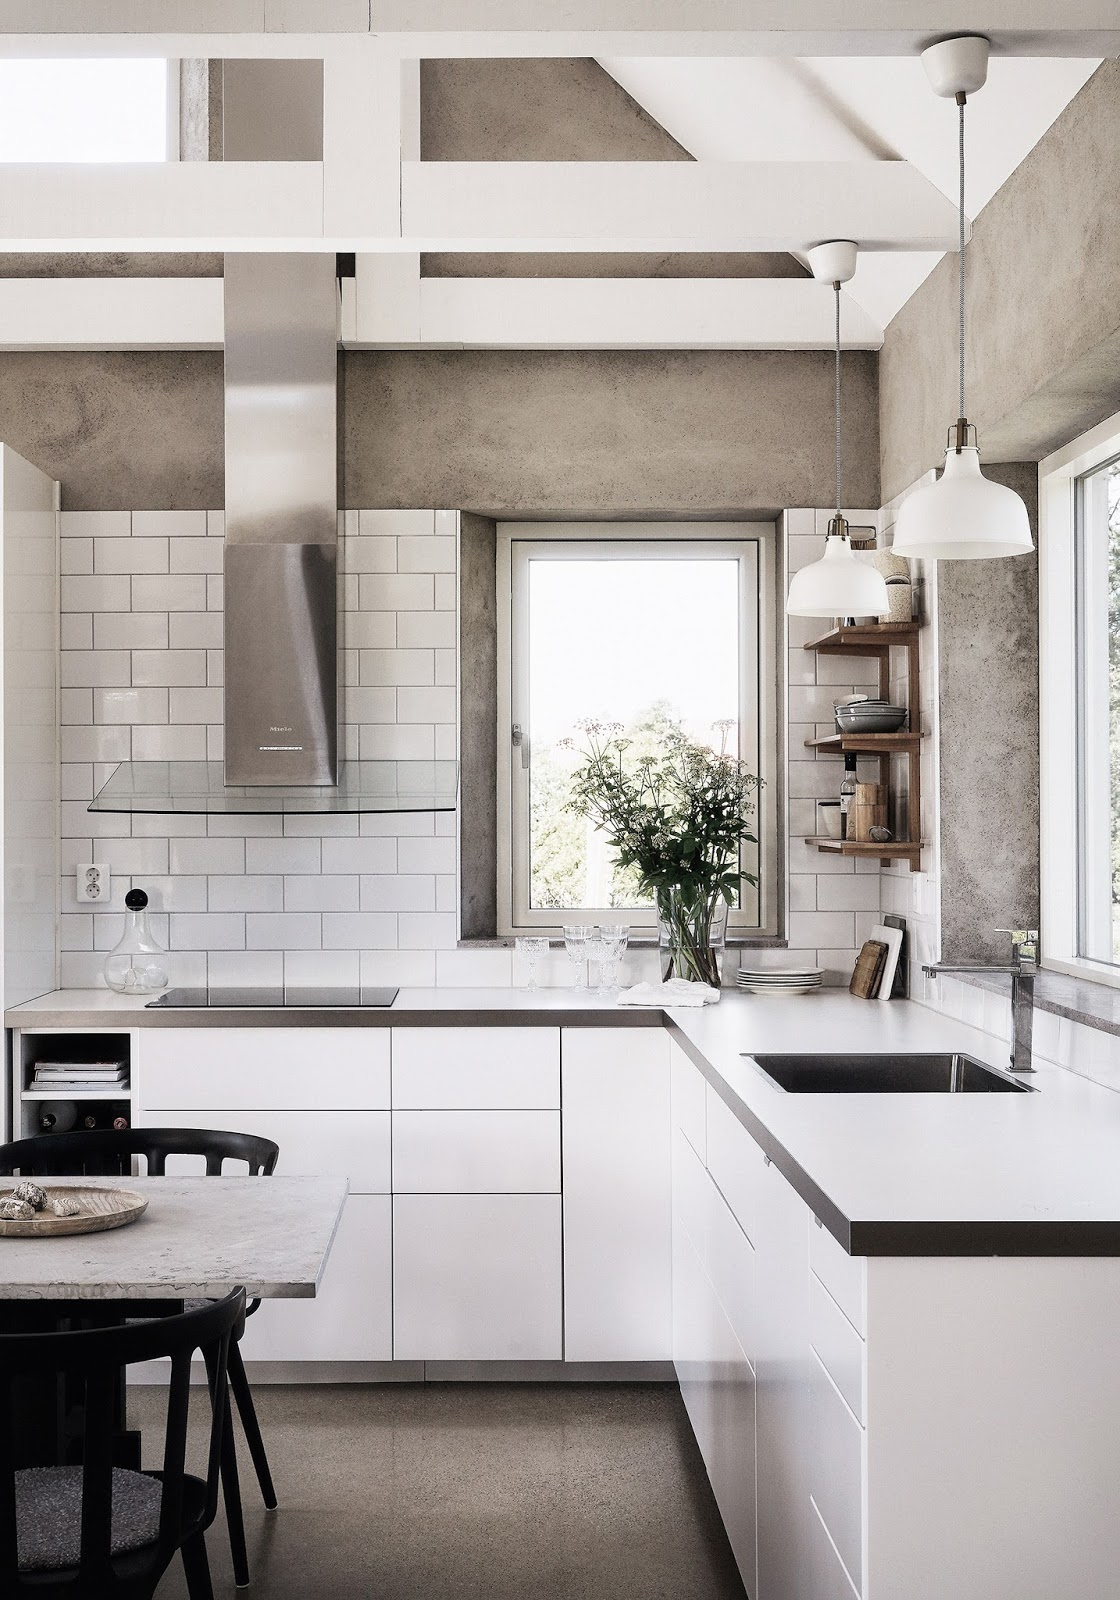 The kitchen is white and modern, concrete walls mix with white tiles and cabinets